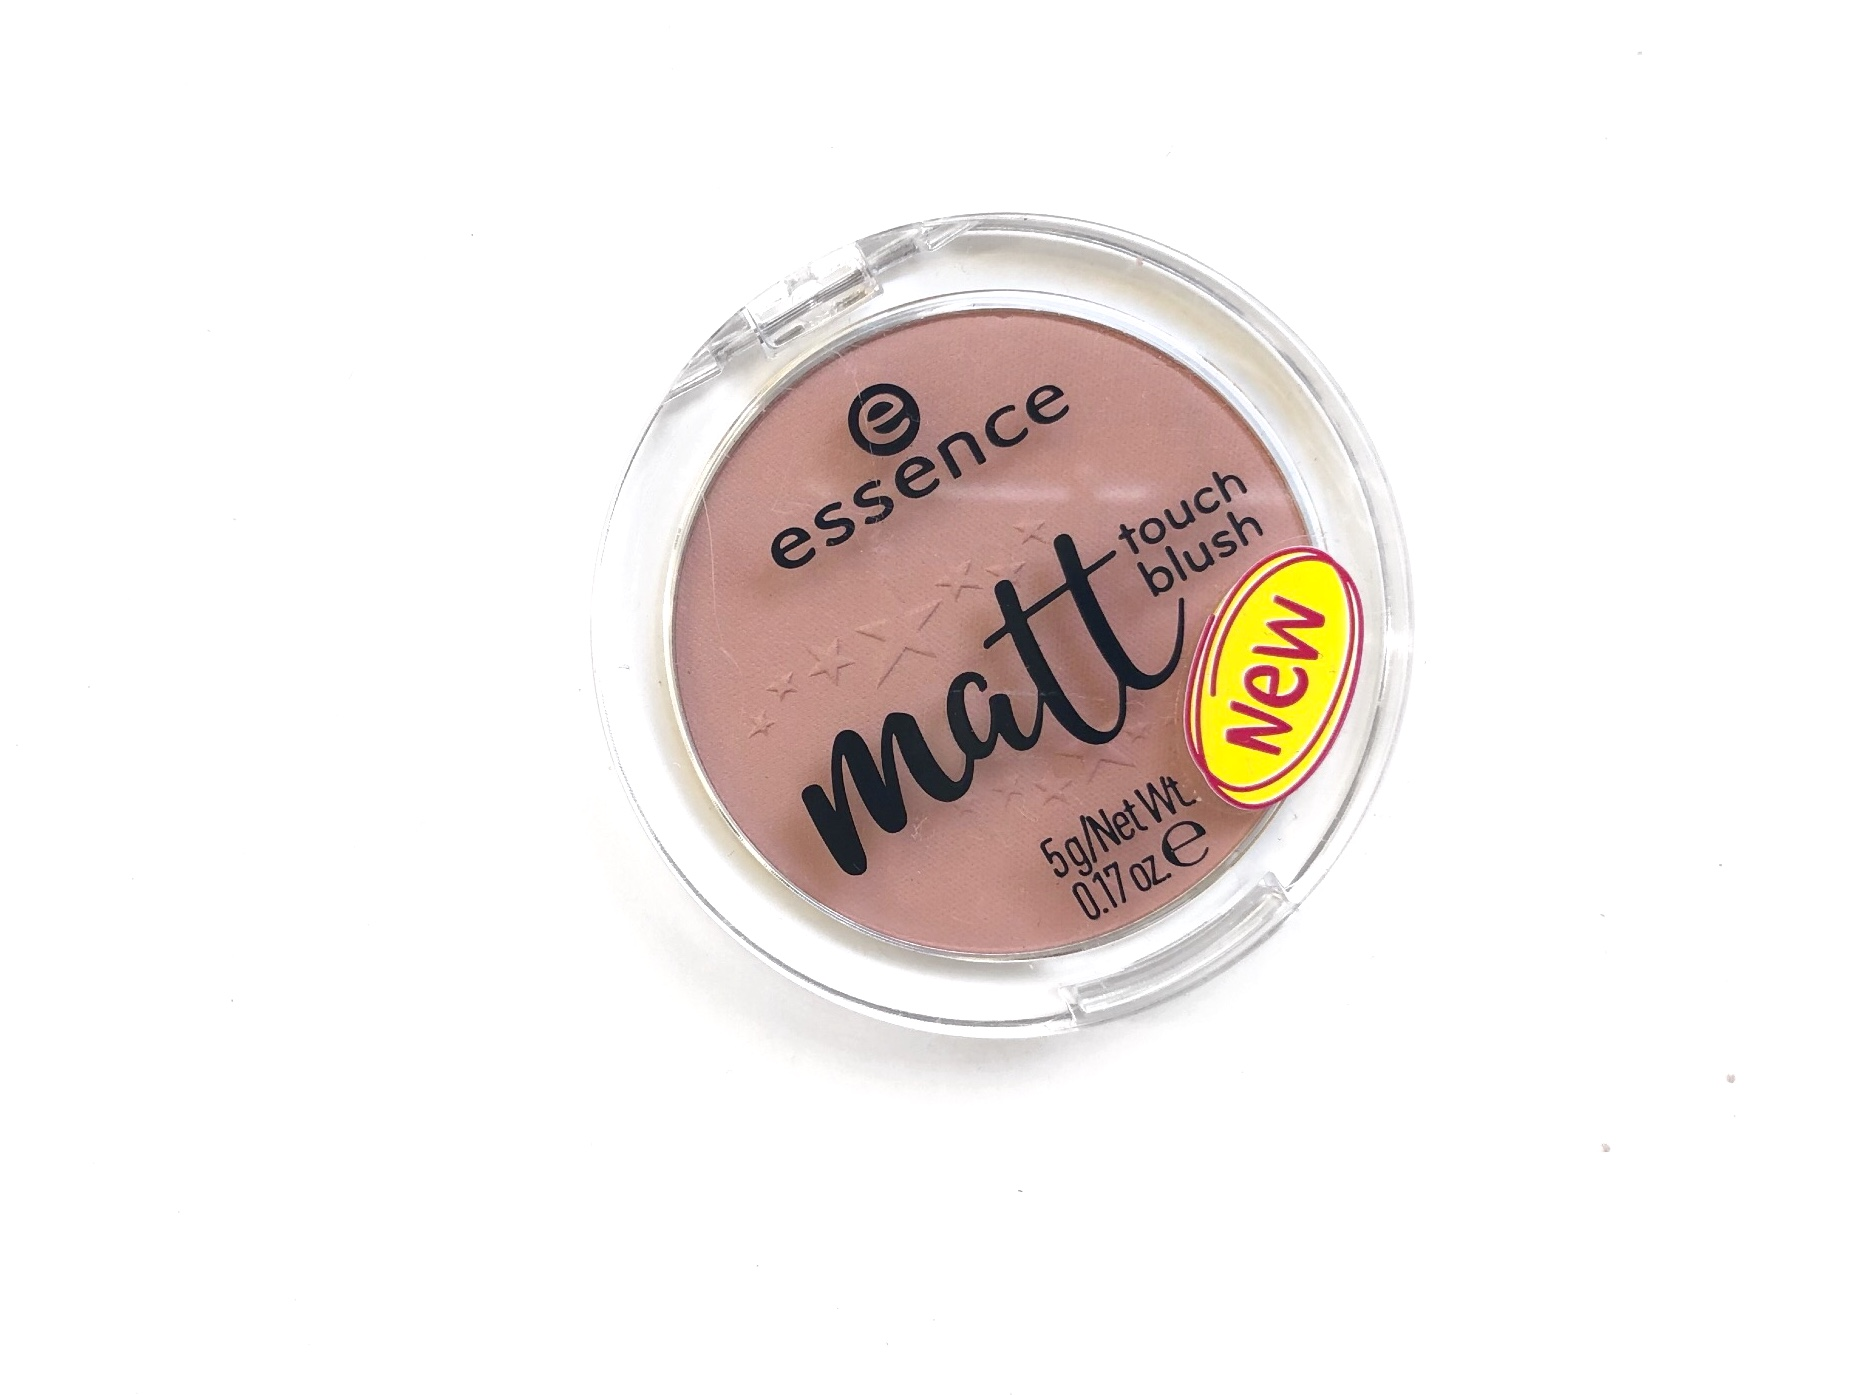 Essence 40 Blossom Me Up! Matt Touch Blush Review 1